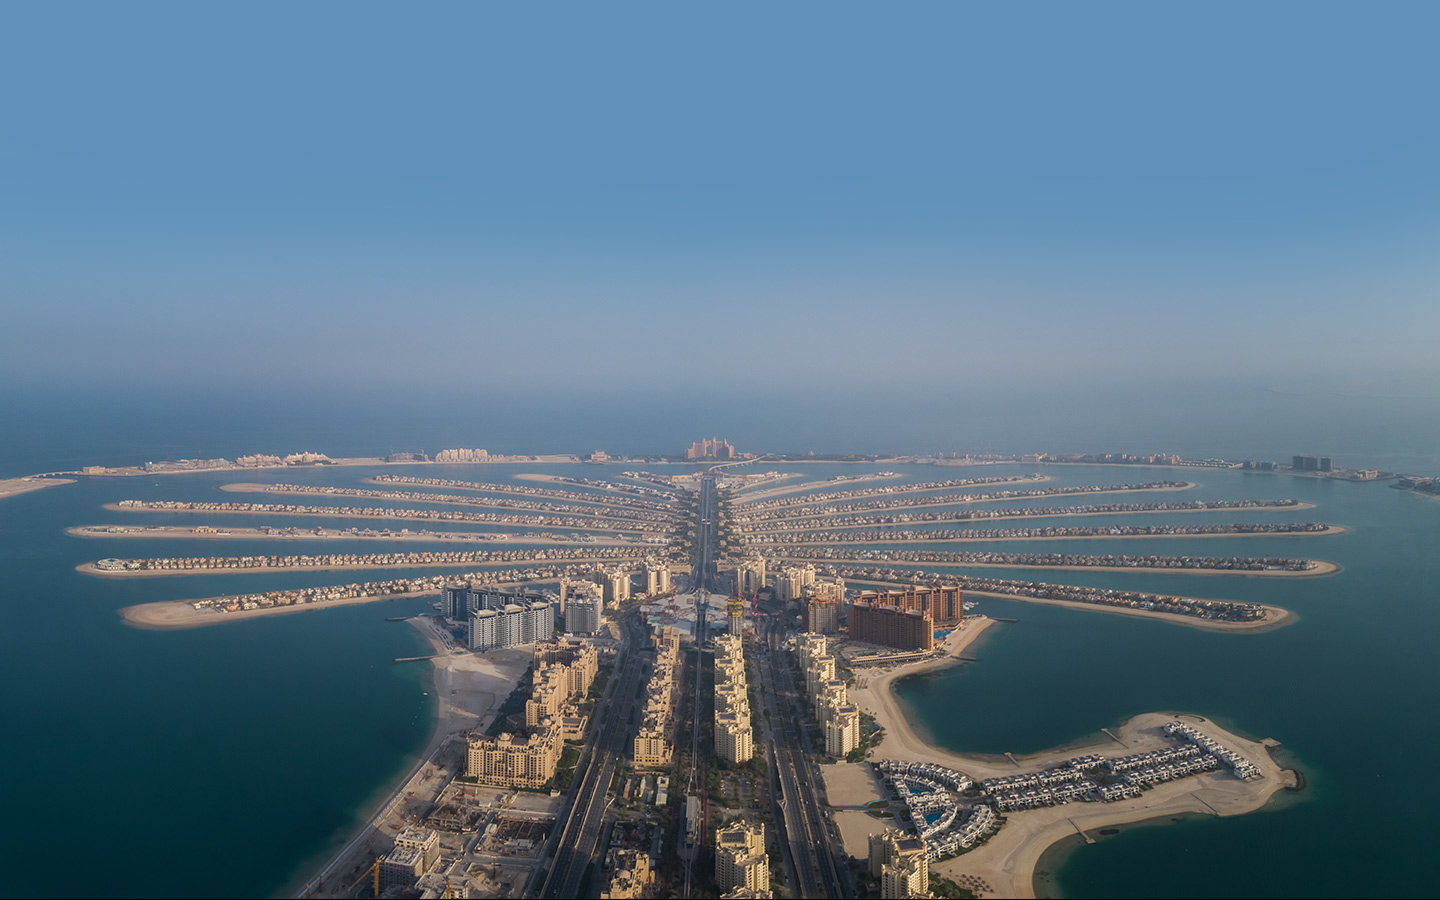 The Palm Jumeirah Islands One Of Dubais Most Exclusive Districts